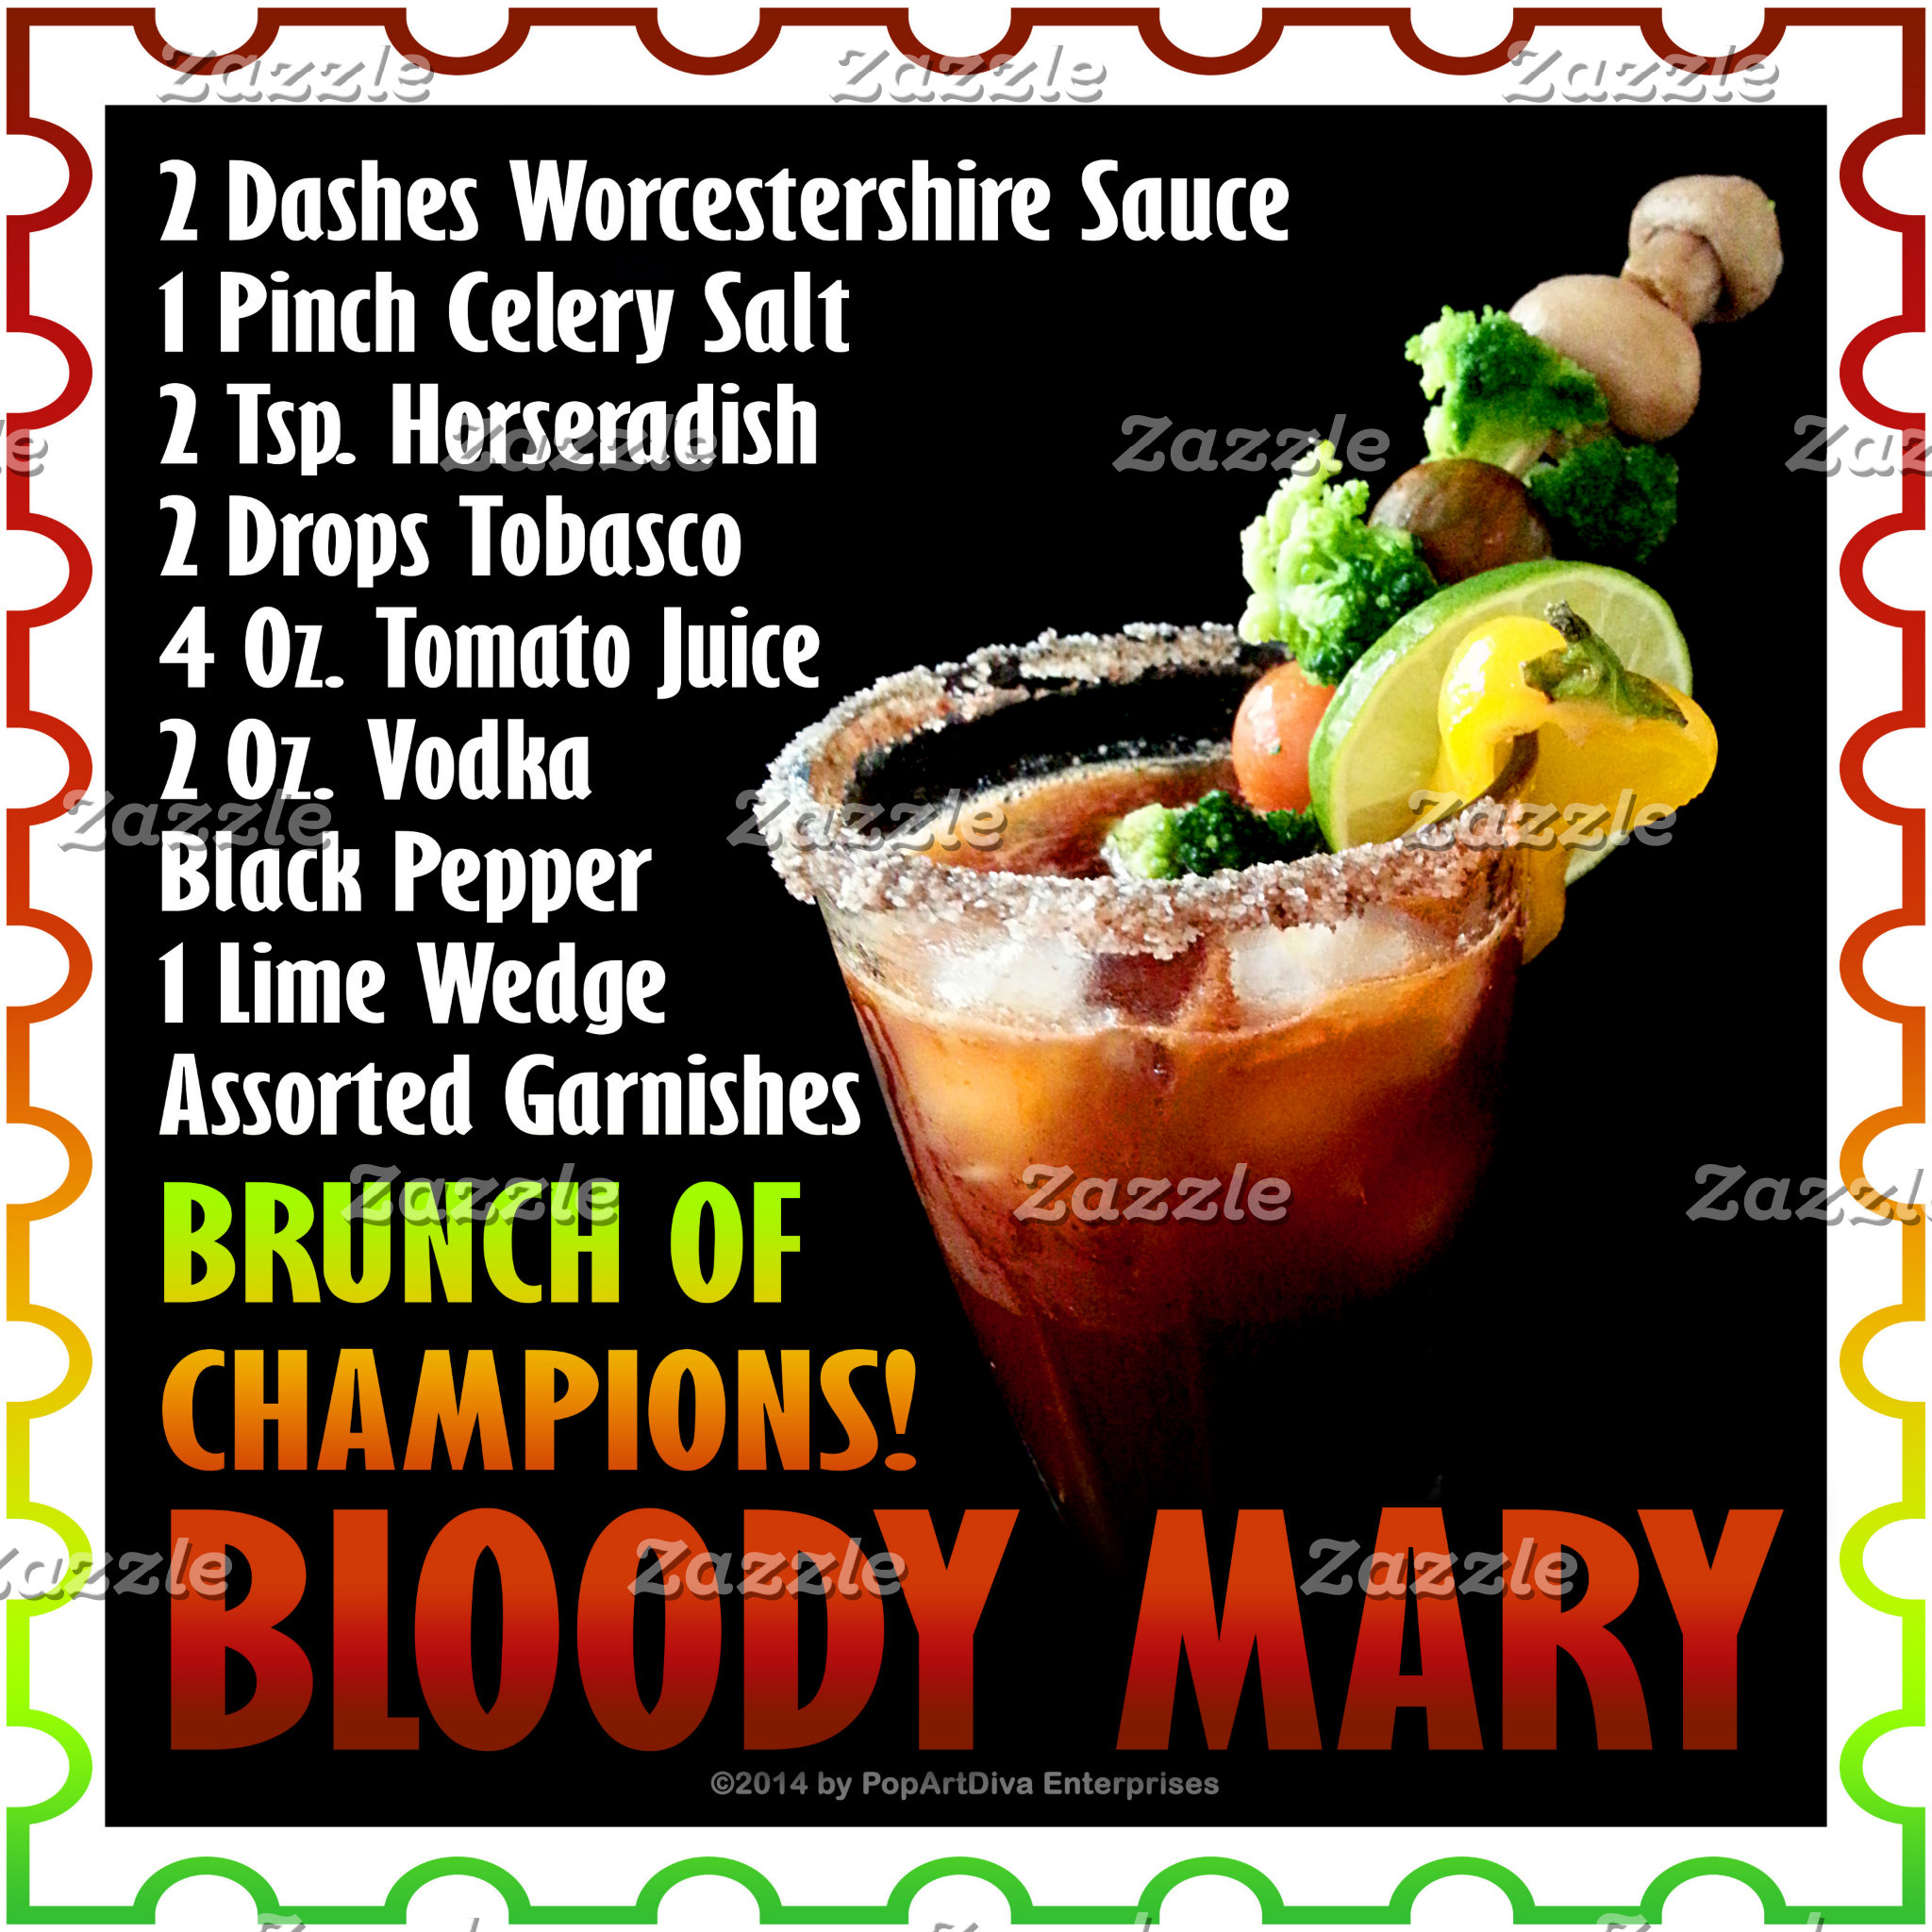 at2 Bloody Mary. Brunch of Champions.